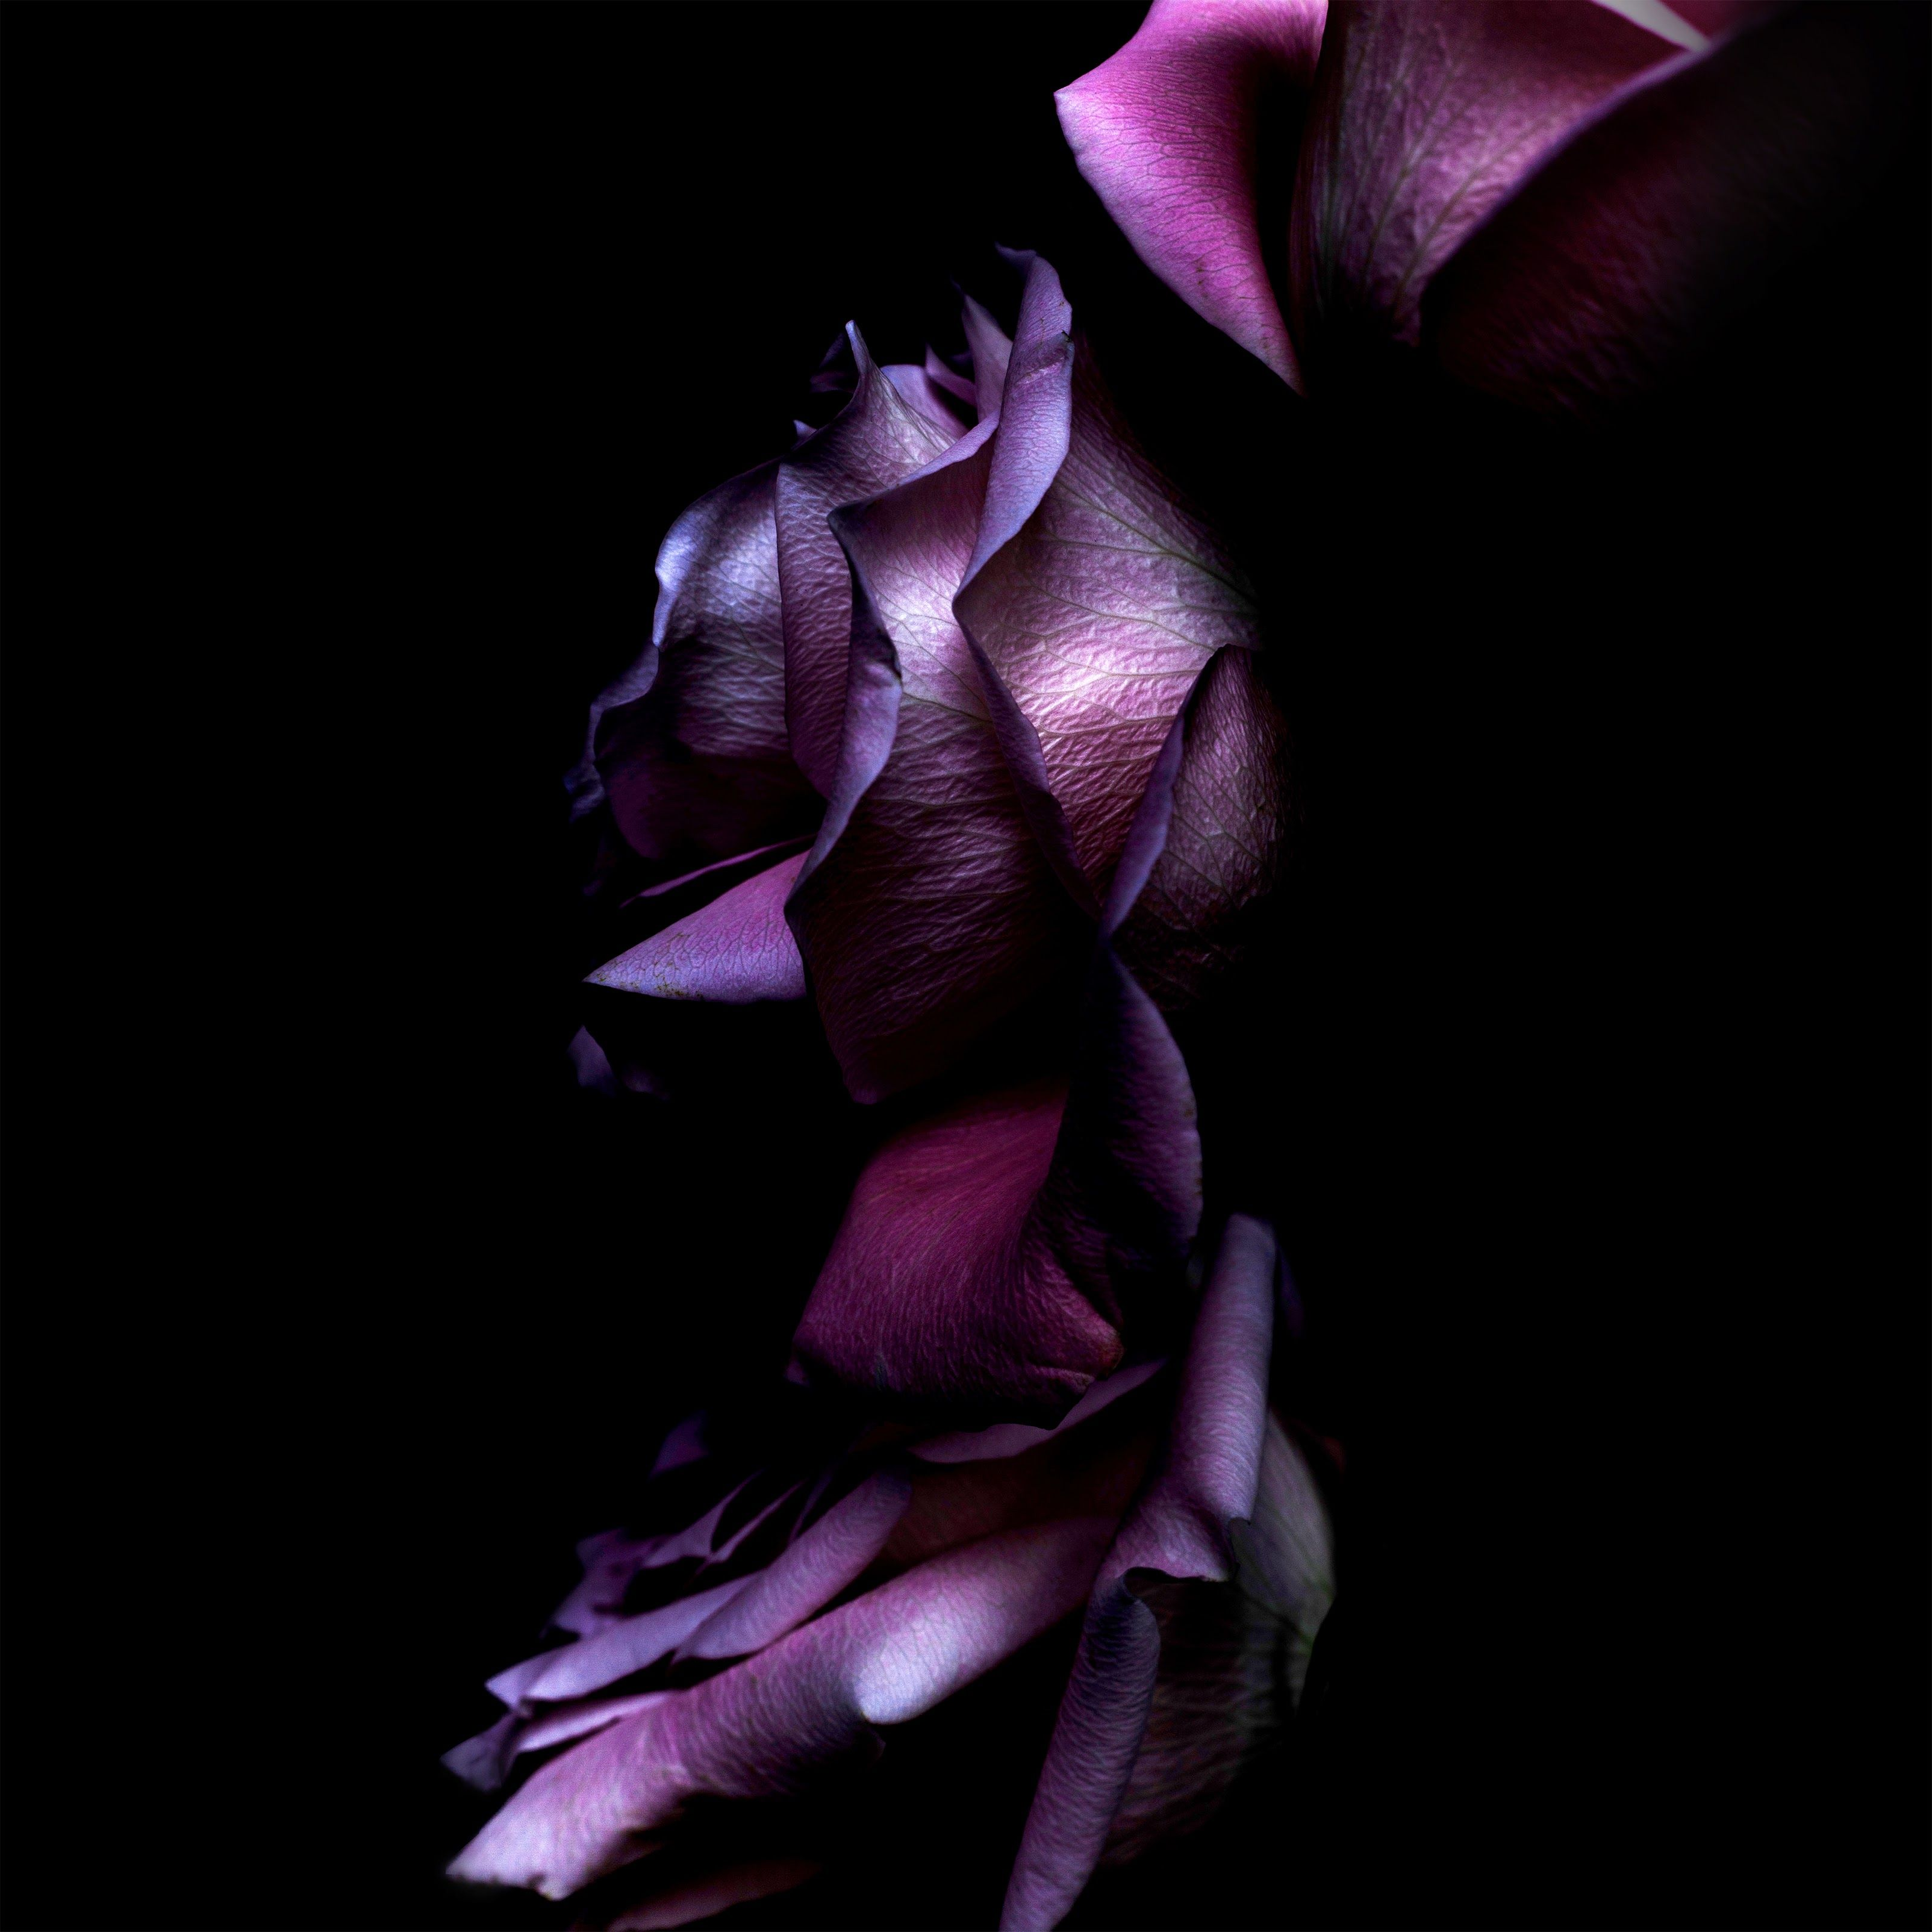 3208x3208 Ios11 Purple Rose 4k, HD Computer, 4k Wallpapers, Images ...